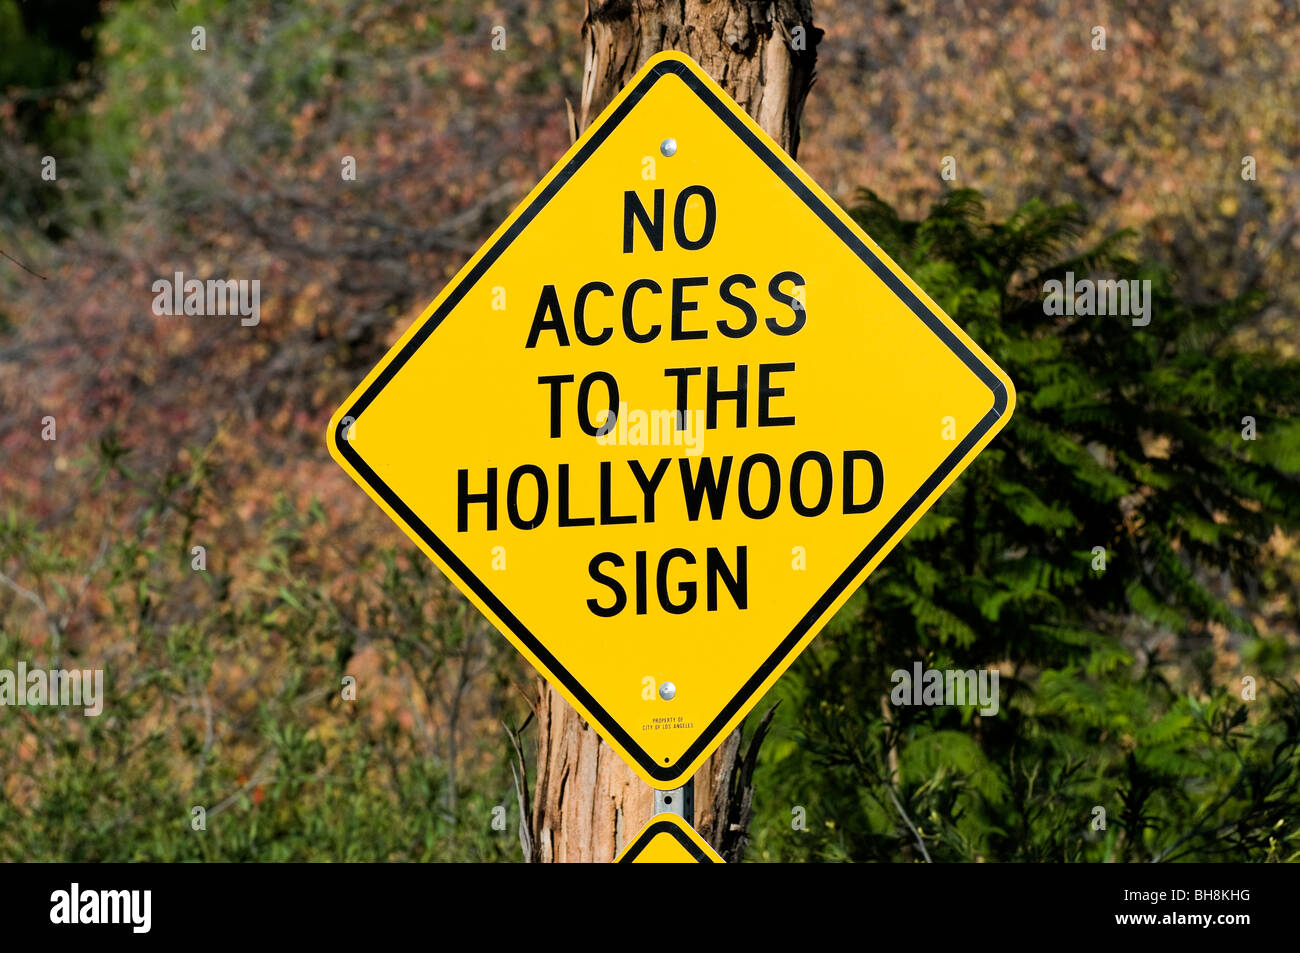 Hollywood street sign, Los Angeles, California, USA - Stock Image